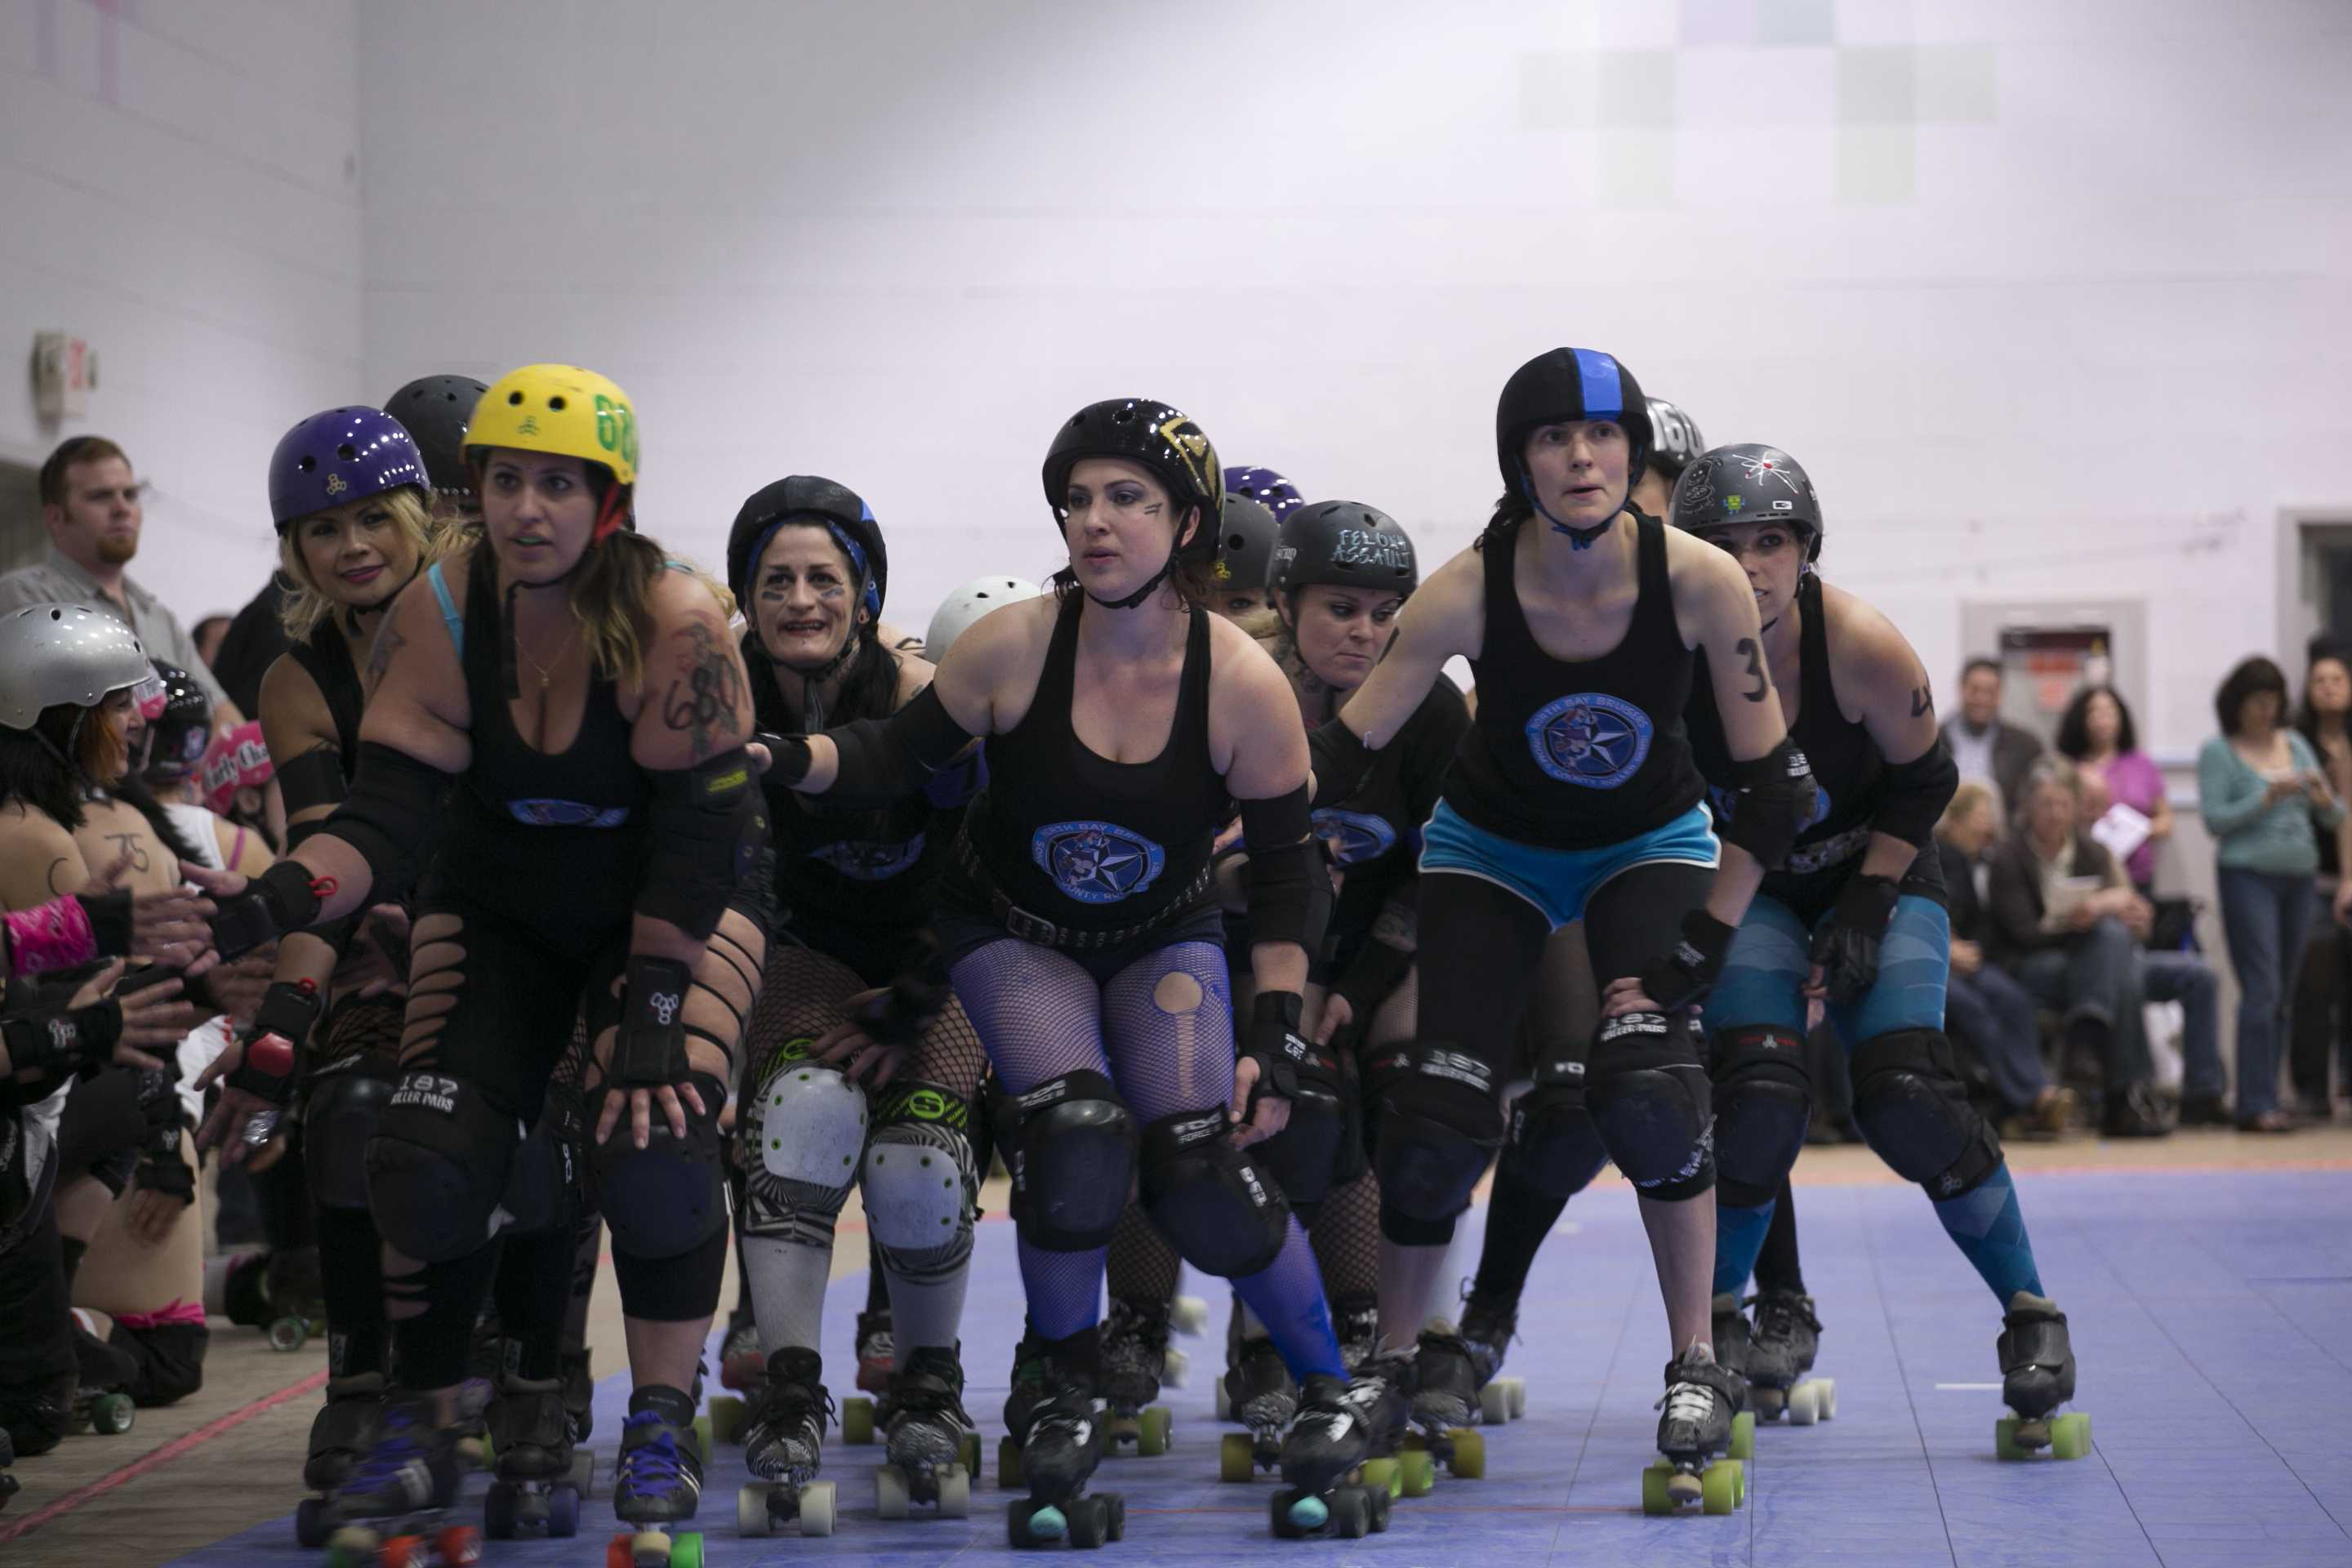 Sonoma County Roller Derby skates as a massive wall around the track in a display of camaraderie and exhibition of strength while individual skaters are introduced over the P.A. Saturday night at the Santa Rosa Veteran's Building.